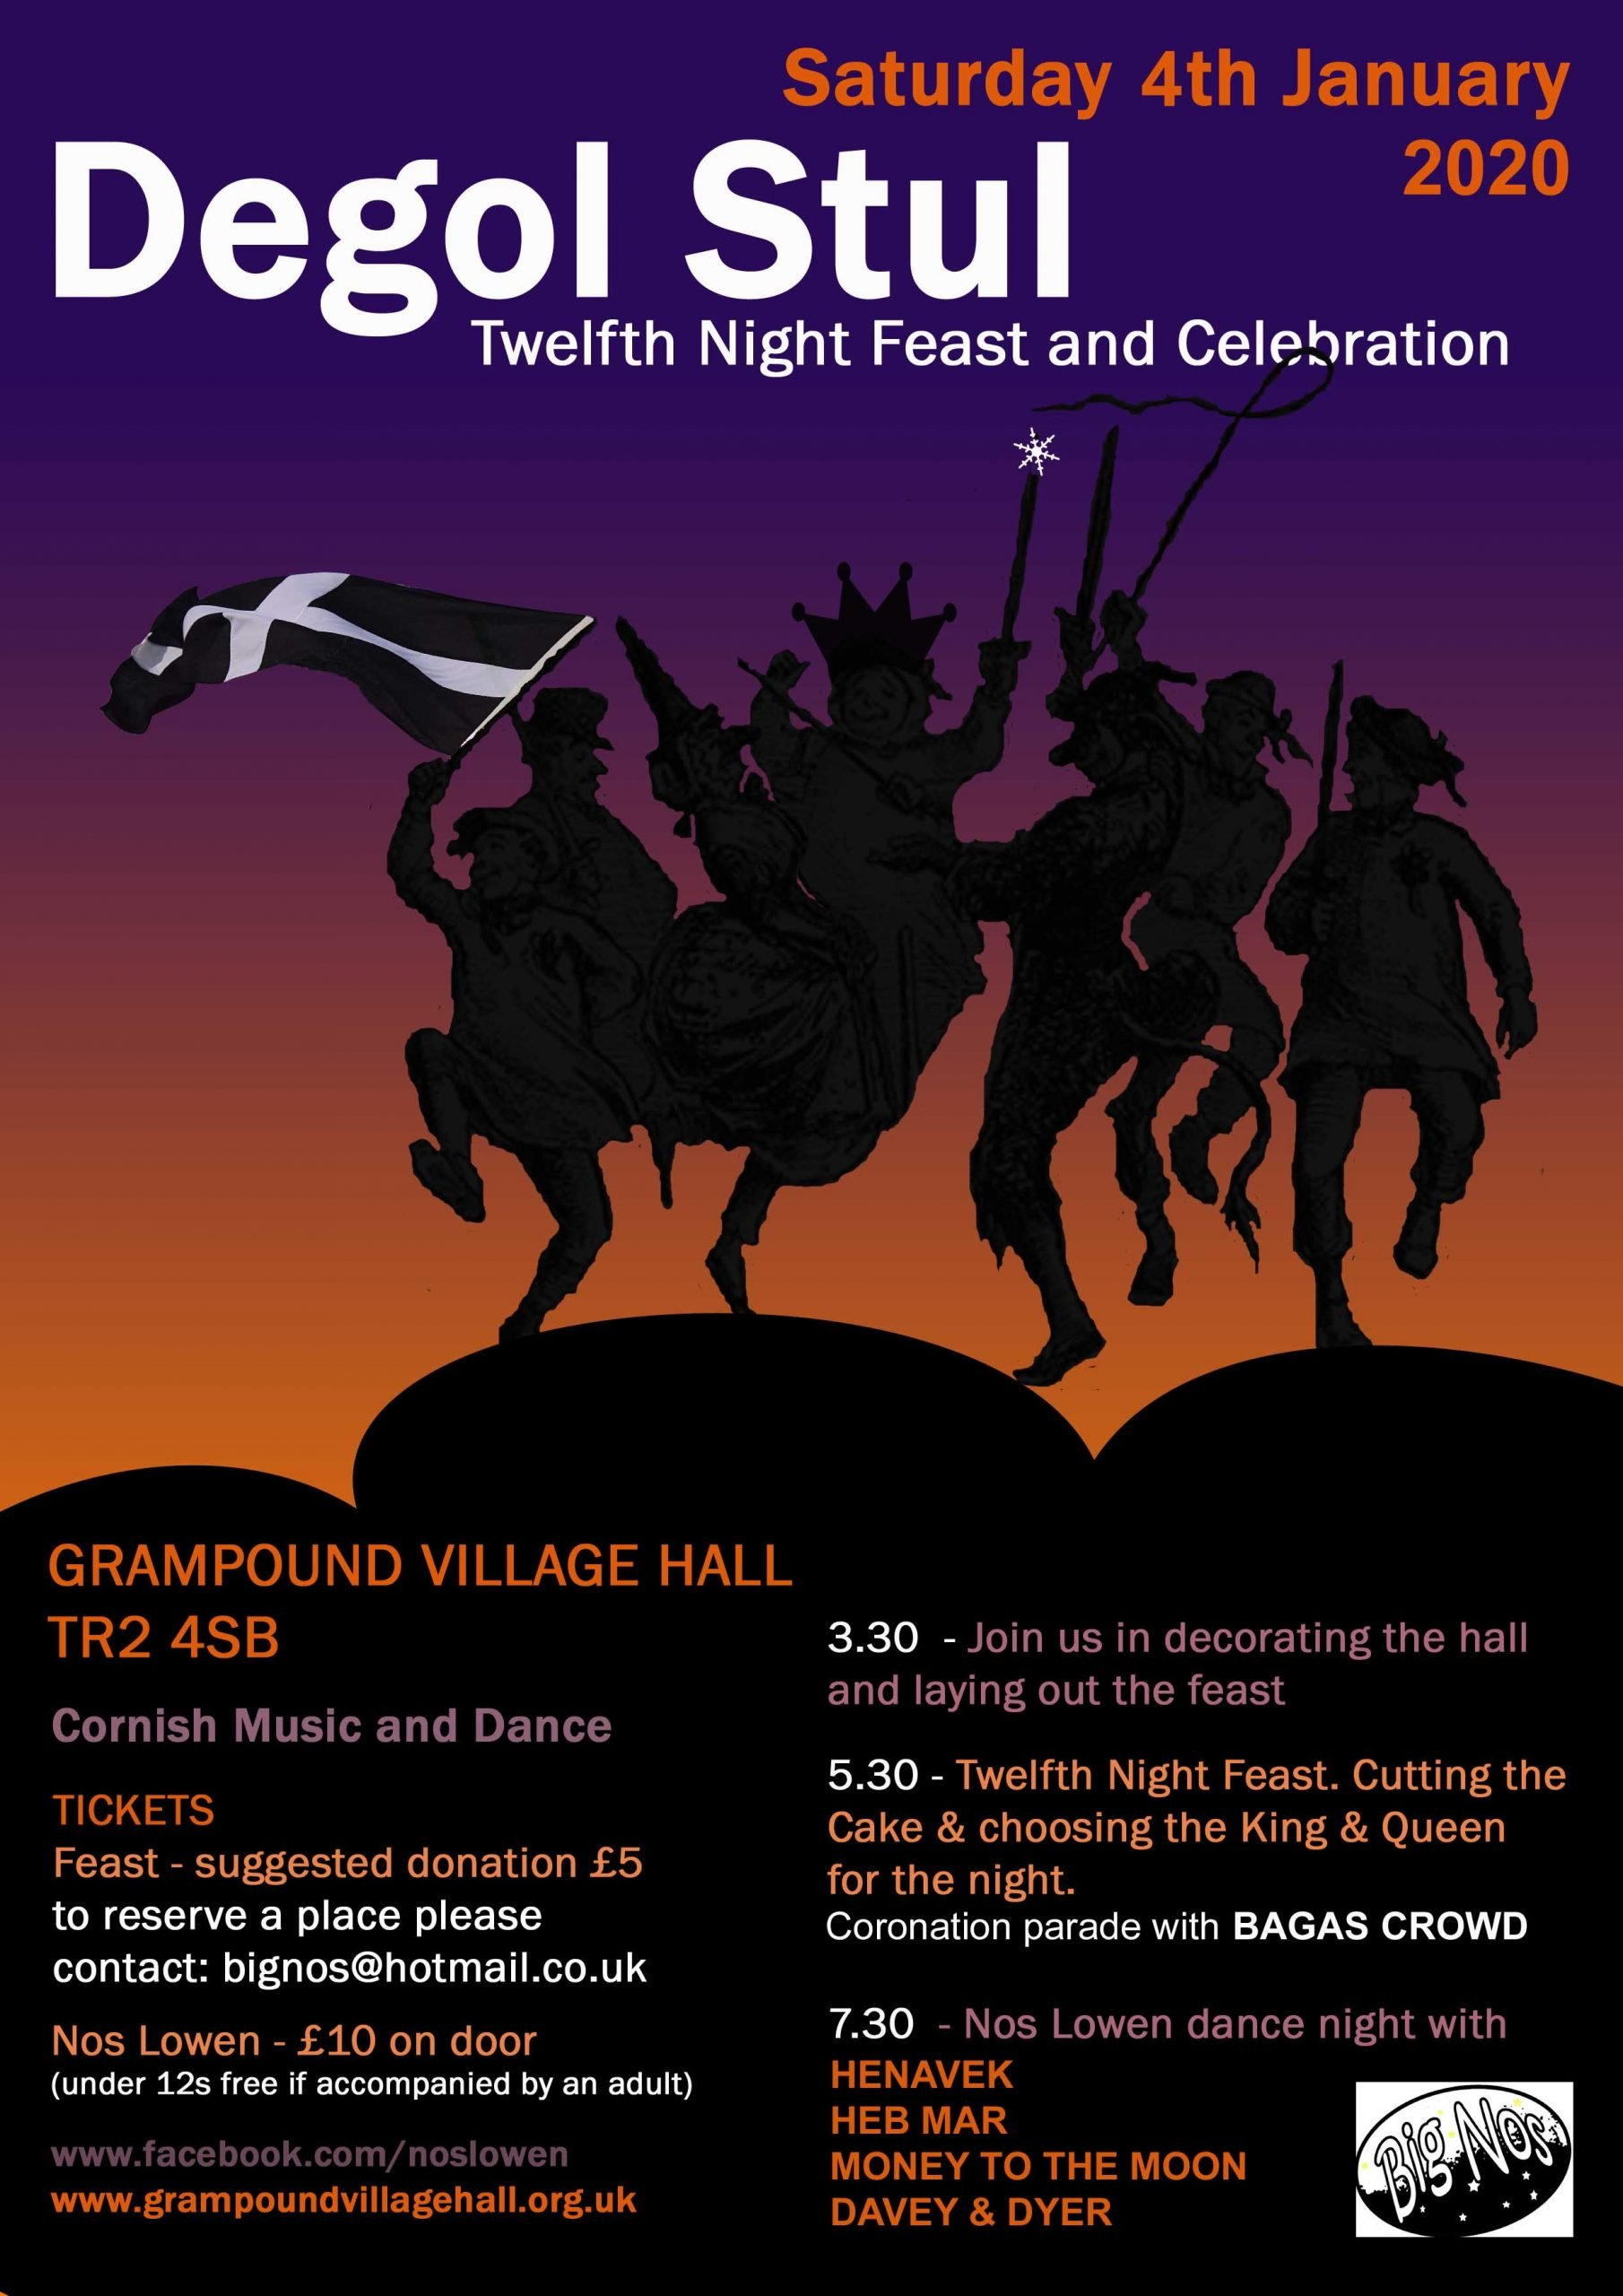 Poster for Degol Stul - Twelfth Night celebrations at Grampound Village Hall, 4 January 2019